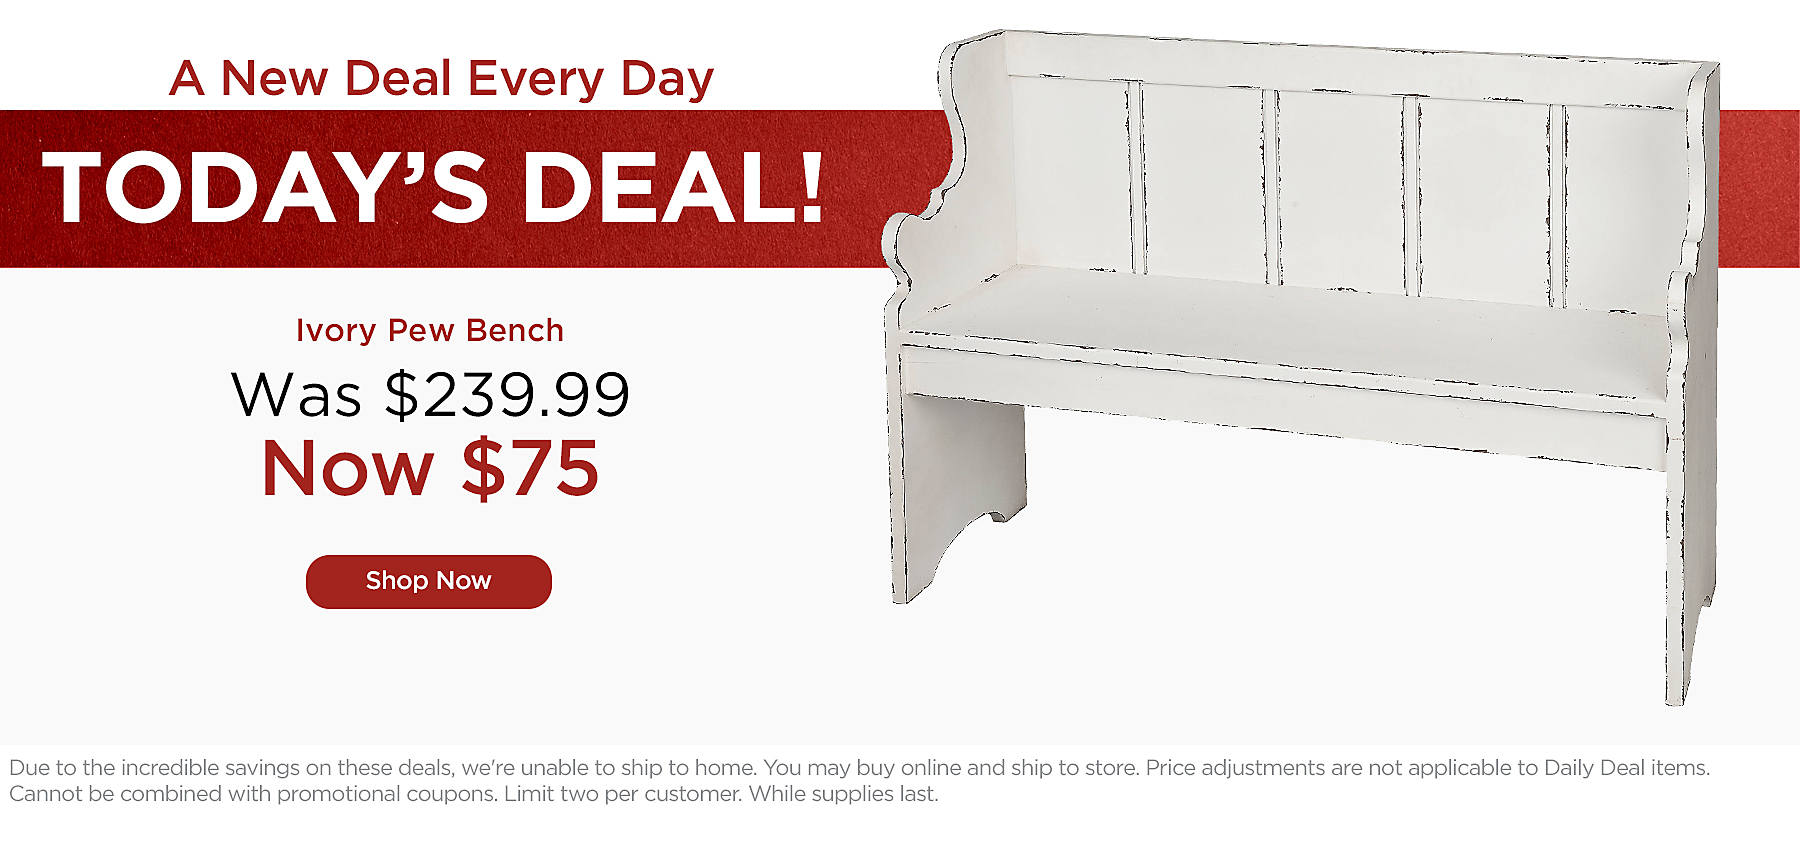 One Day Only - Ivory Pew Bench, Was $239.99, Now $75 - Due to the incredible savings on these deals, we're unable to ship to home. You may buy online and ship to store. Price adjustments are not applicable to Daily Deal items. Cannot be combined with promotional coupons. Limit two per customer. While supplies last.